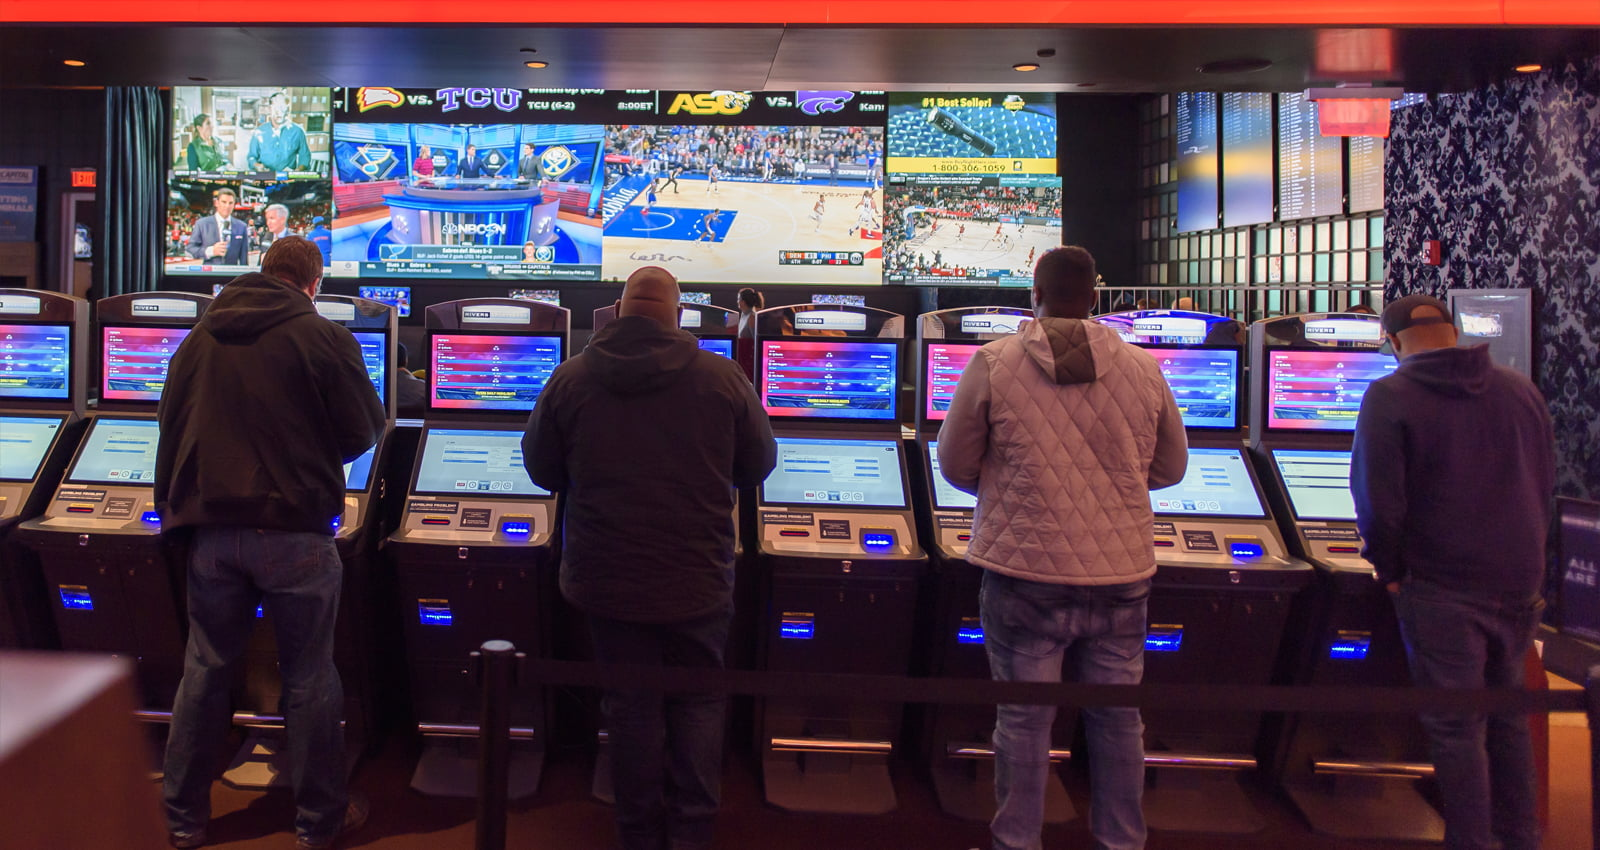 Rivers Spoortsbook sports betting at Rivers Casino & Resort. | Photo Courtesy of Andrew Shinn